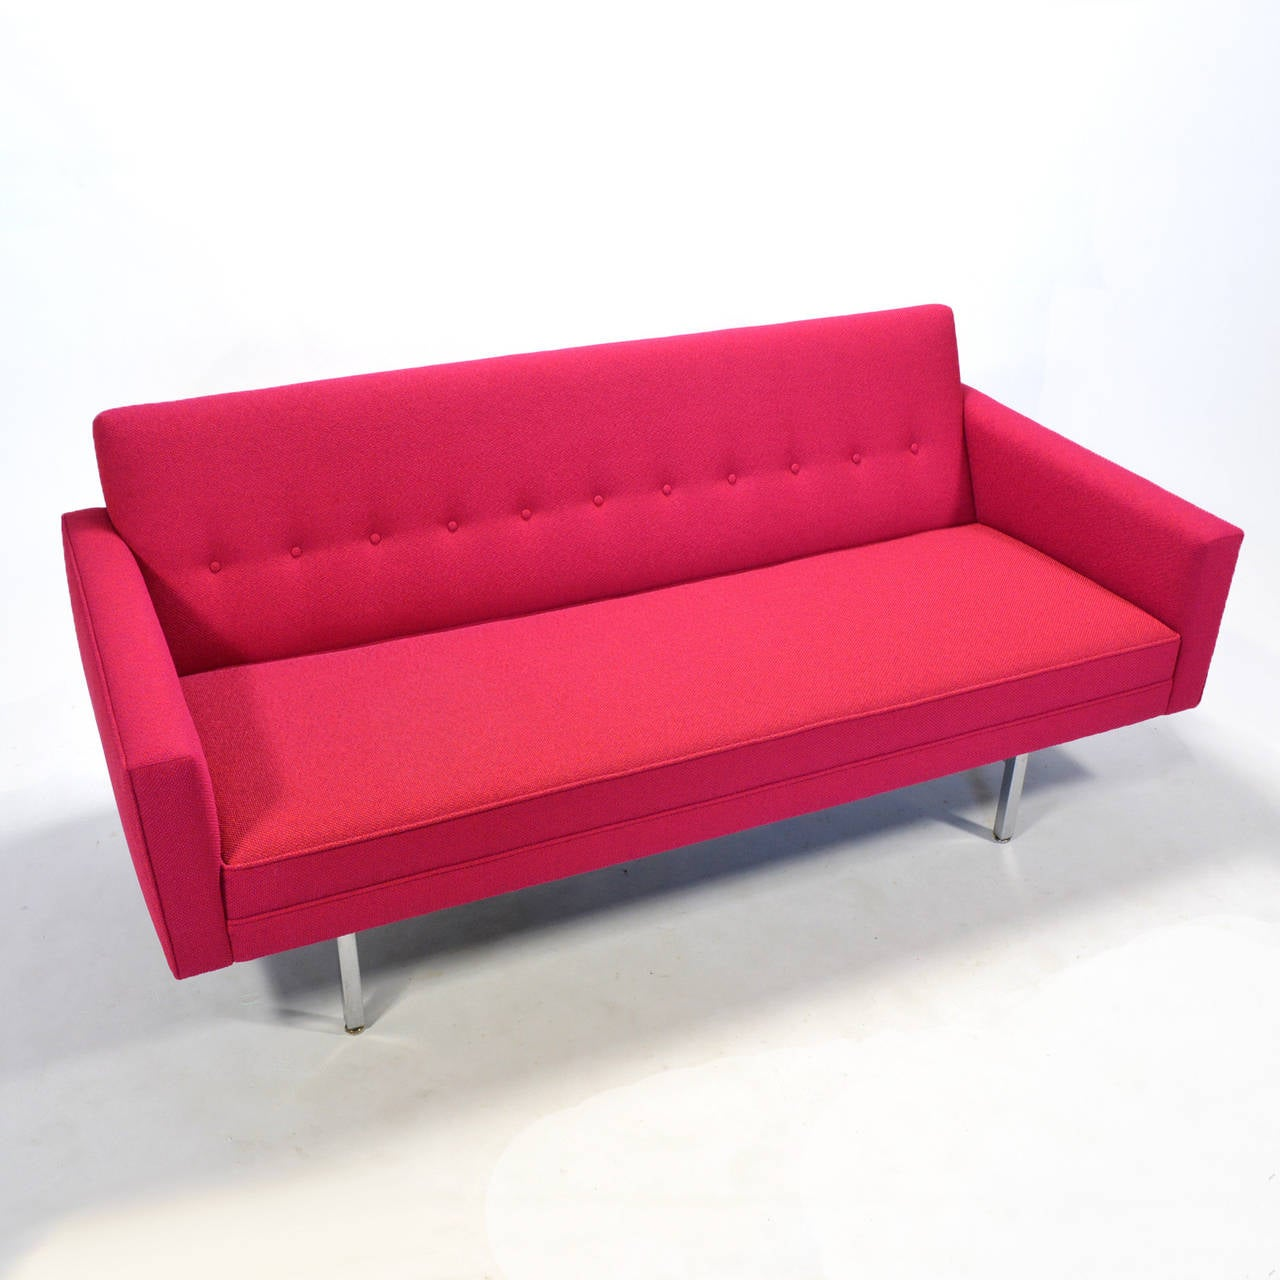 Steel George Nelson Modular Group Sofa For Sale